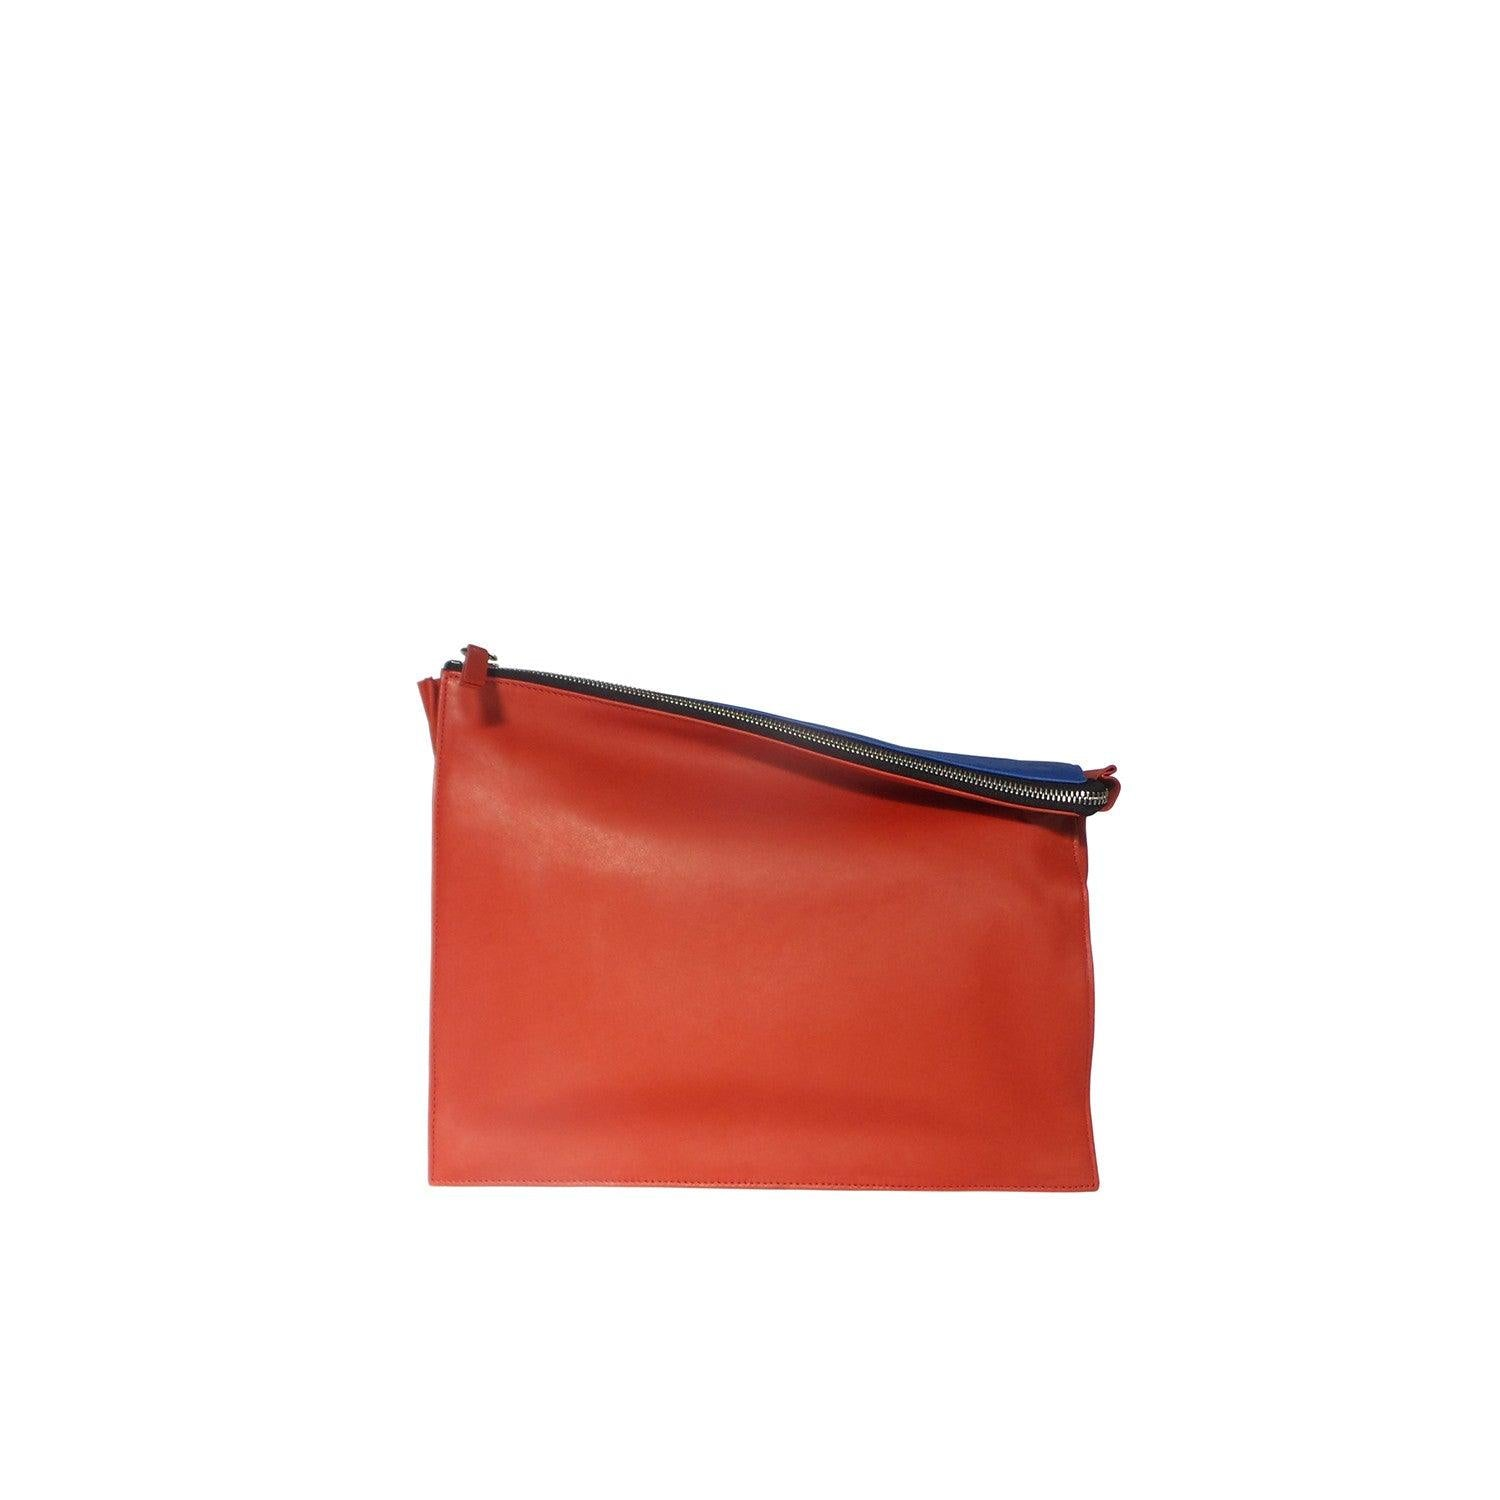 10018 Infinity Power Clutch: Red and Blue Leather